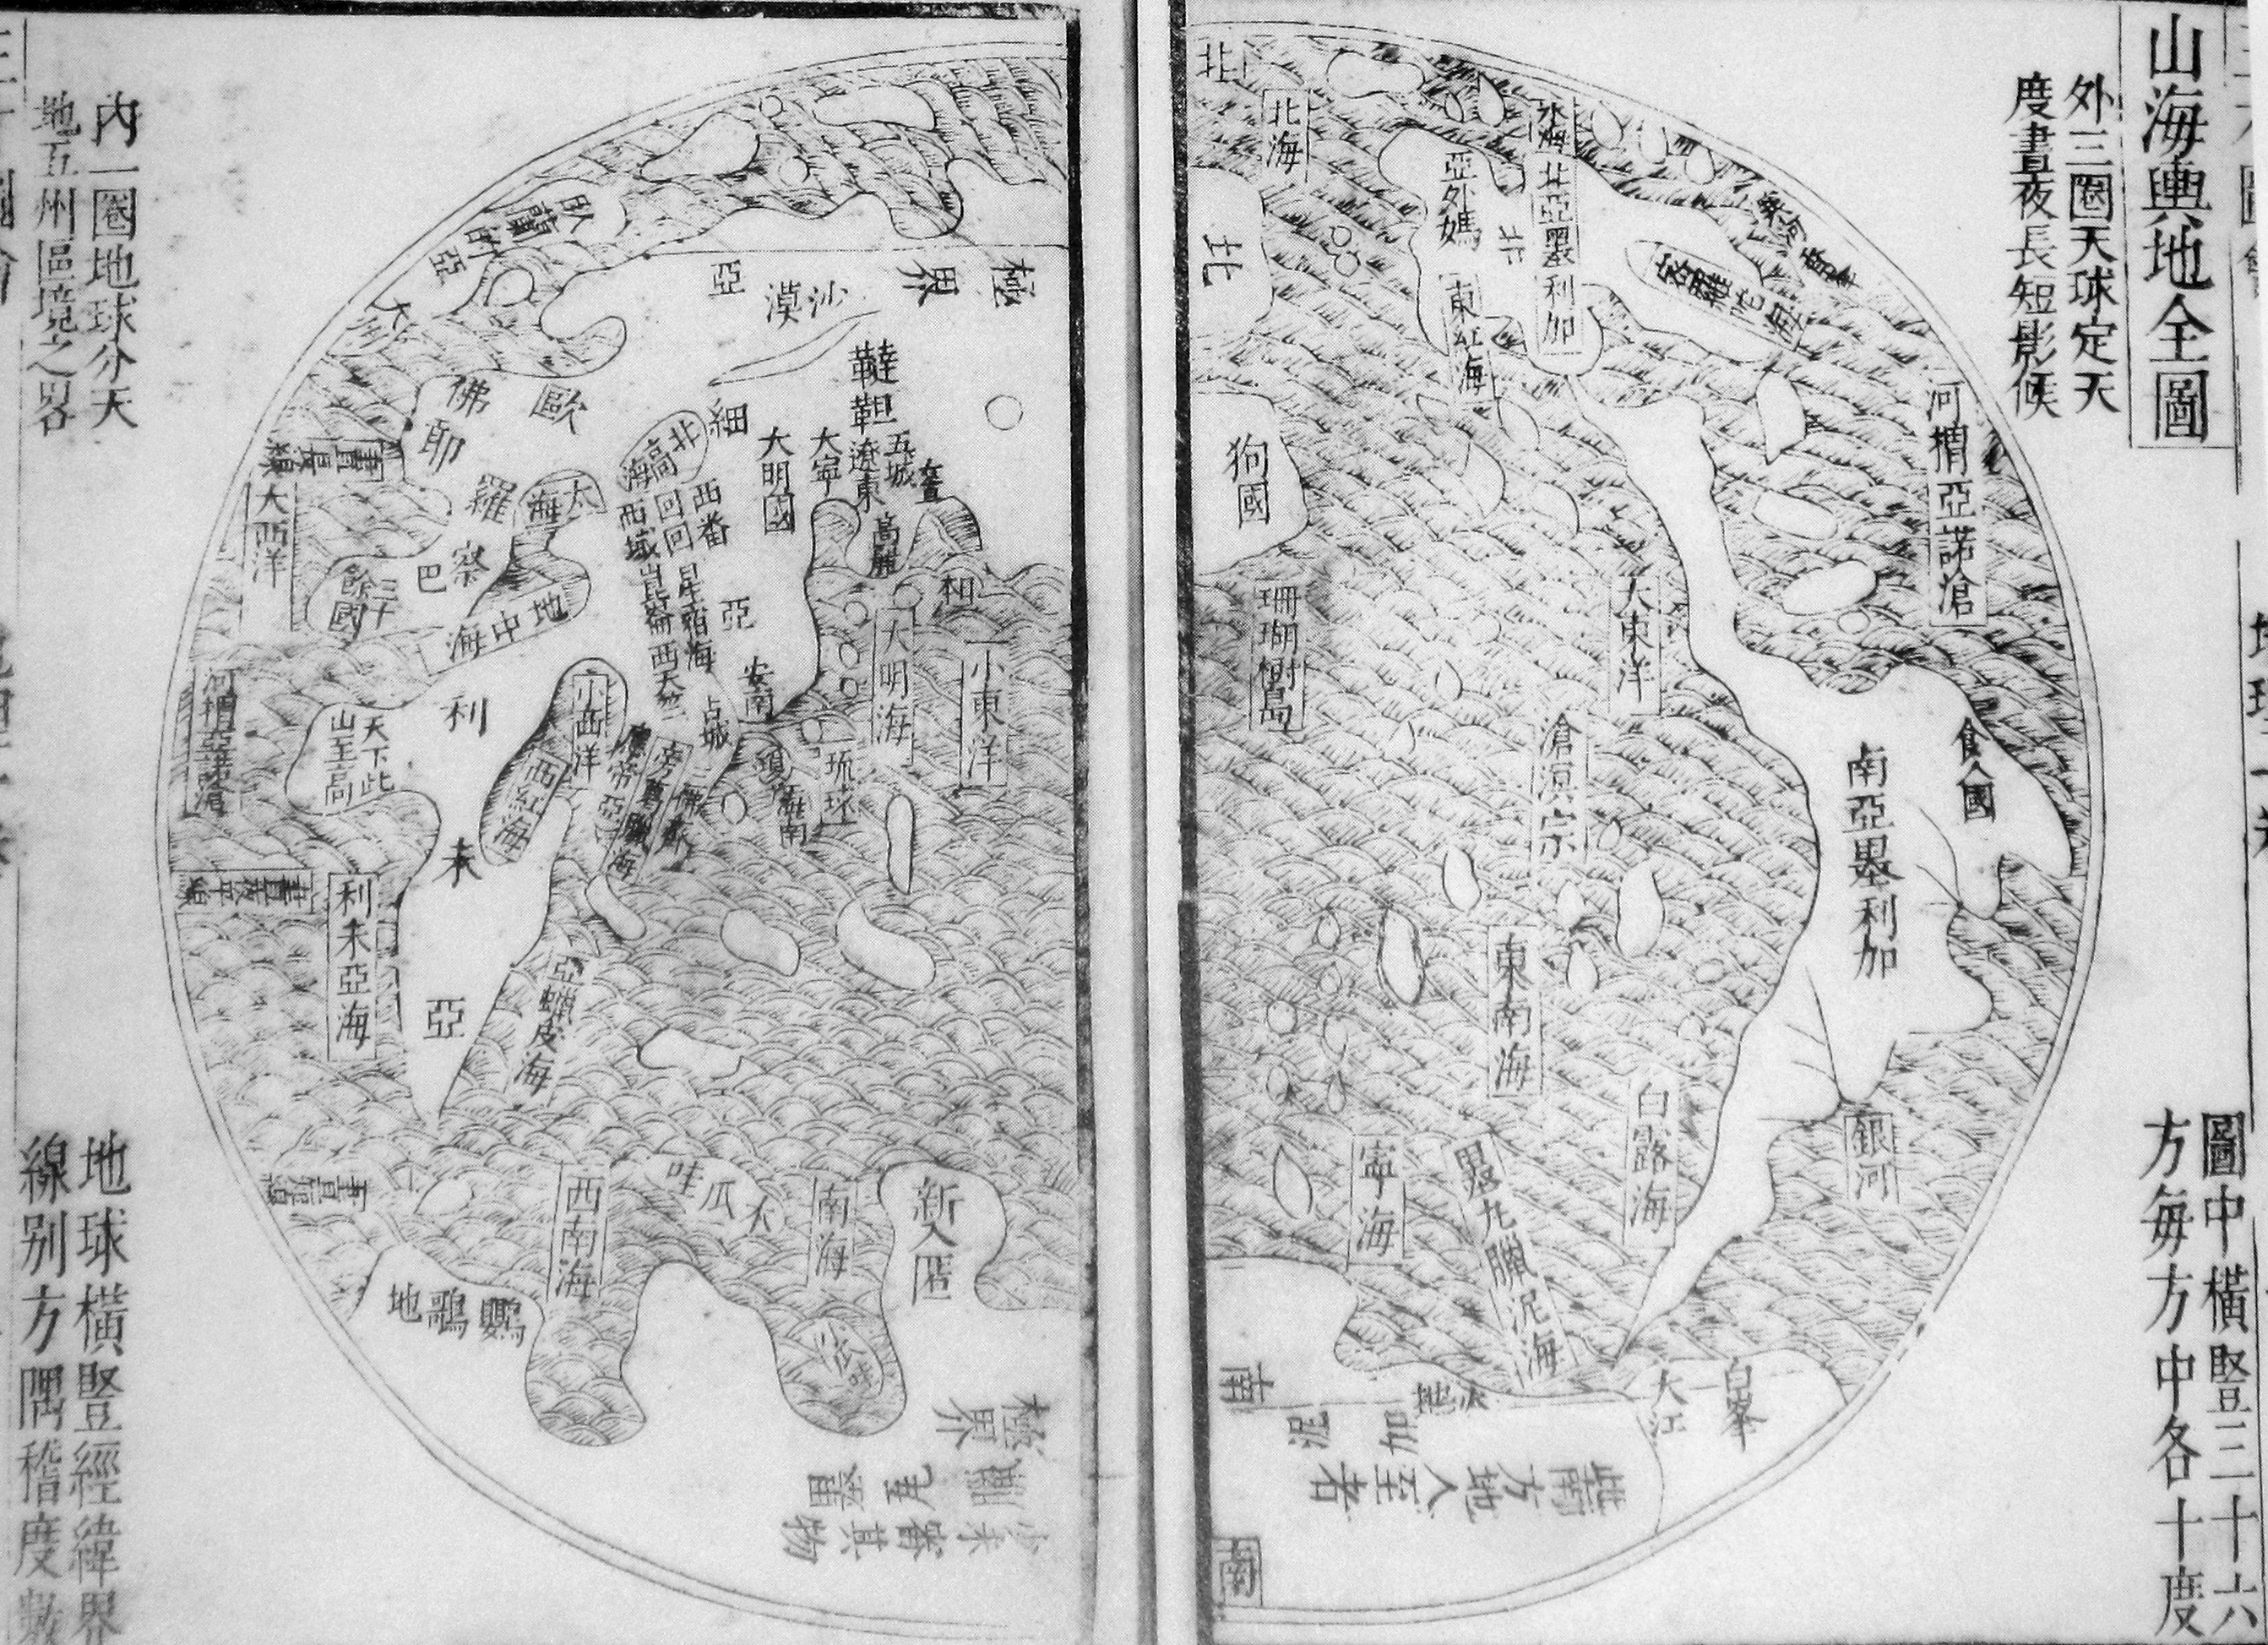 The 1470 Honil Gangni Yeokdae Gukdo Ji Do 混一疆理歷代國都之圖 (Illustration of Included Lands and Regions of Historical Countries and Capitals)